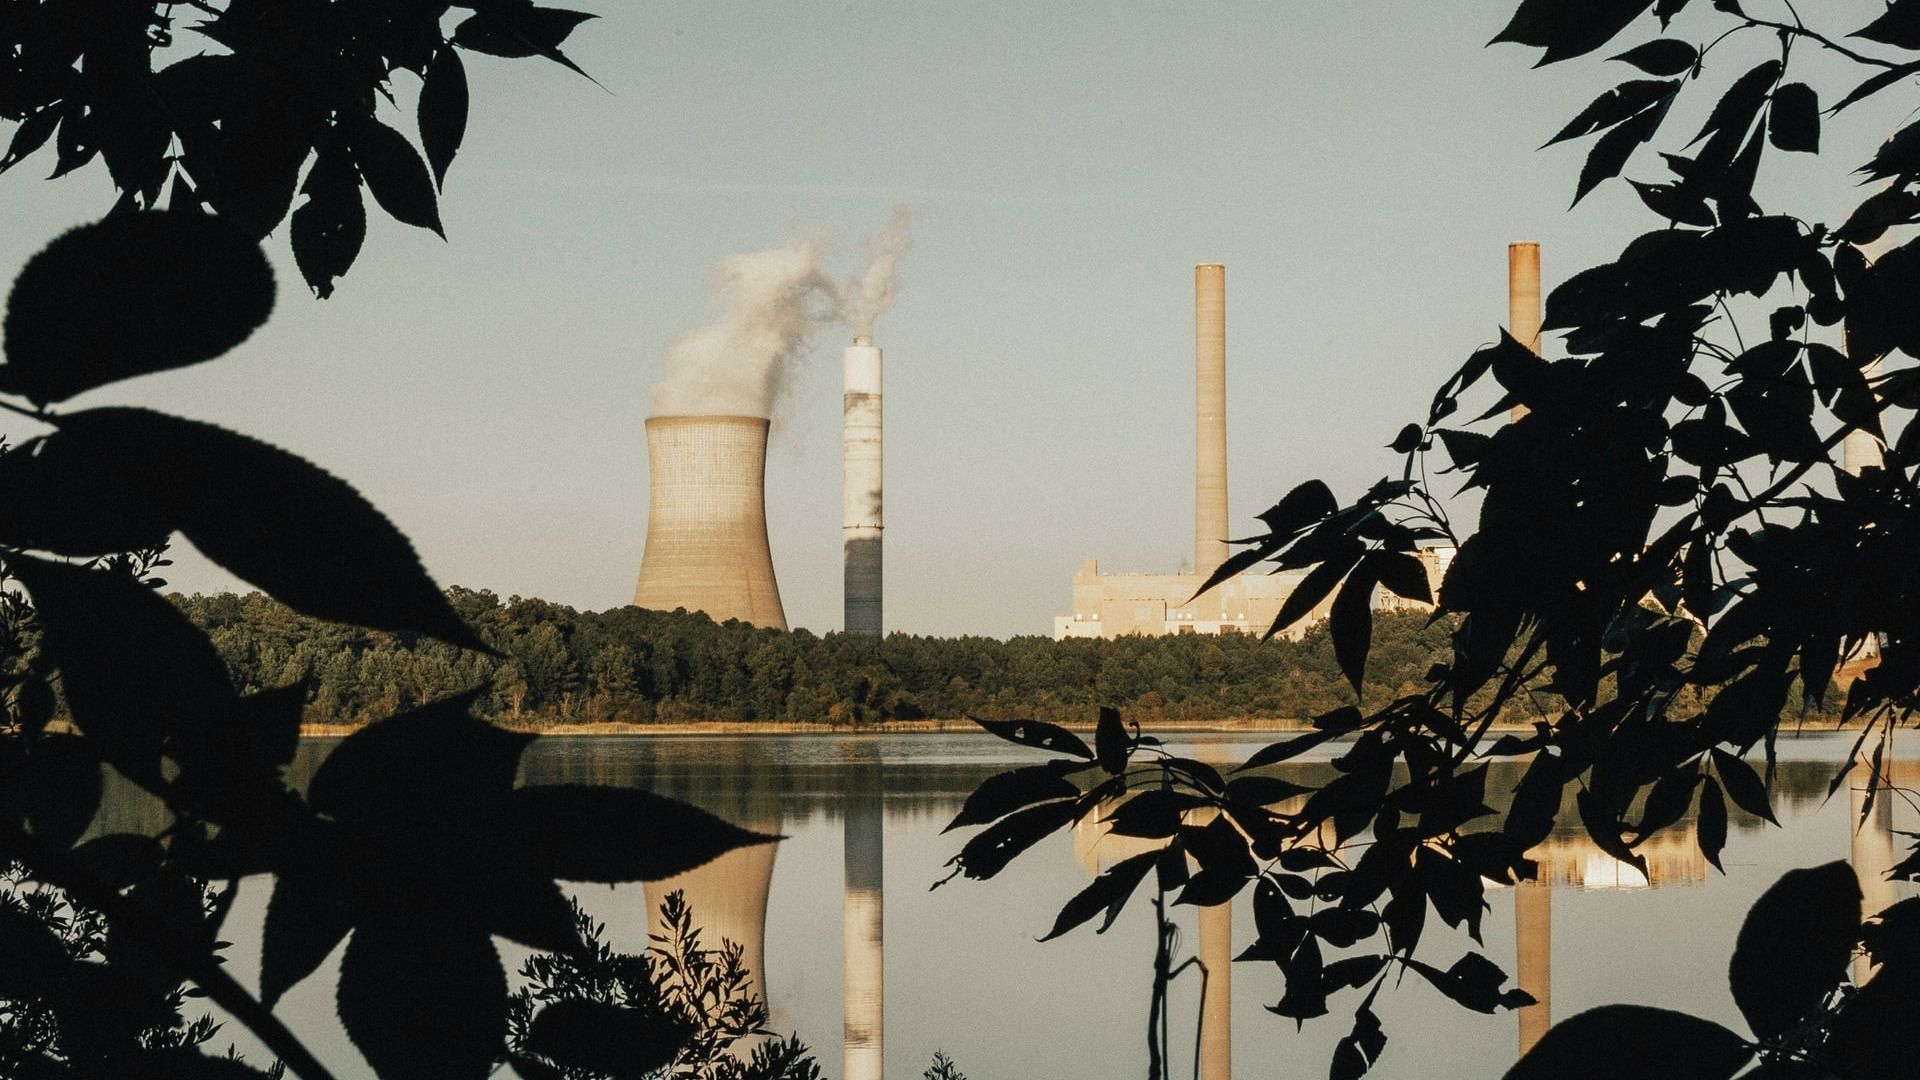 /about-carbon-capture-usage-and-storages-impact-on-the-climate-crisis-kb2v34wz feature image